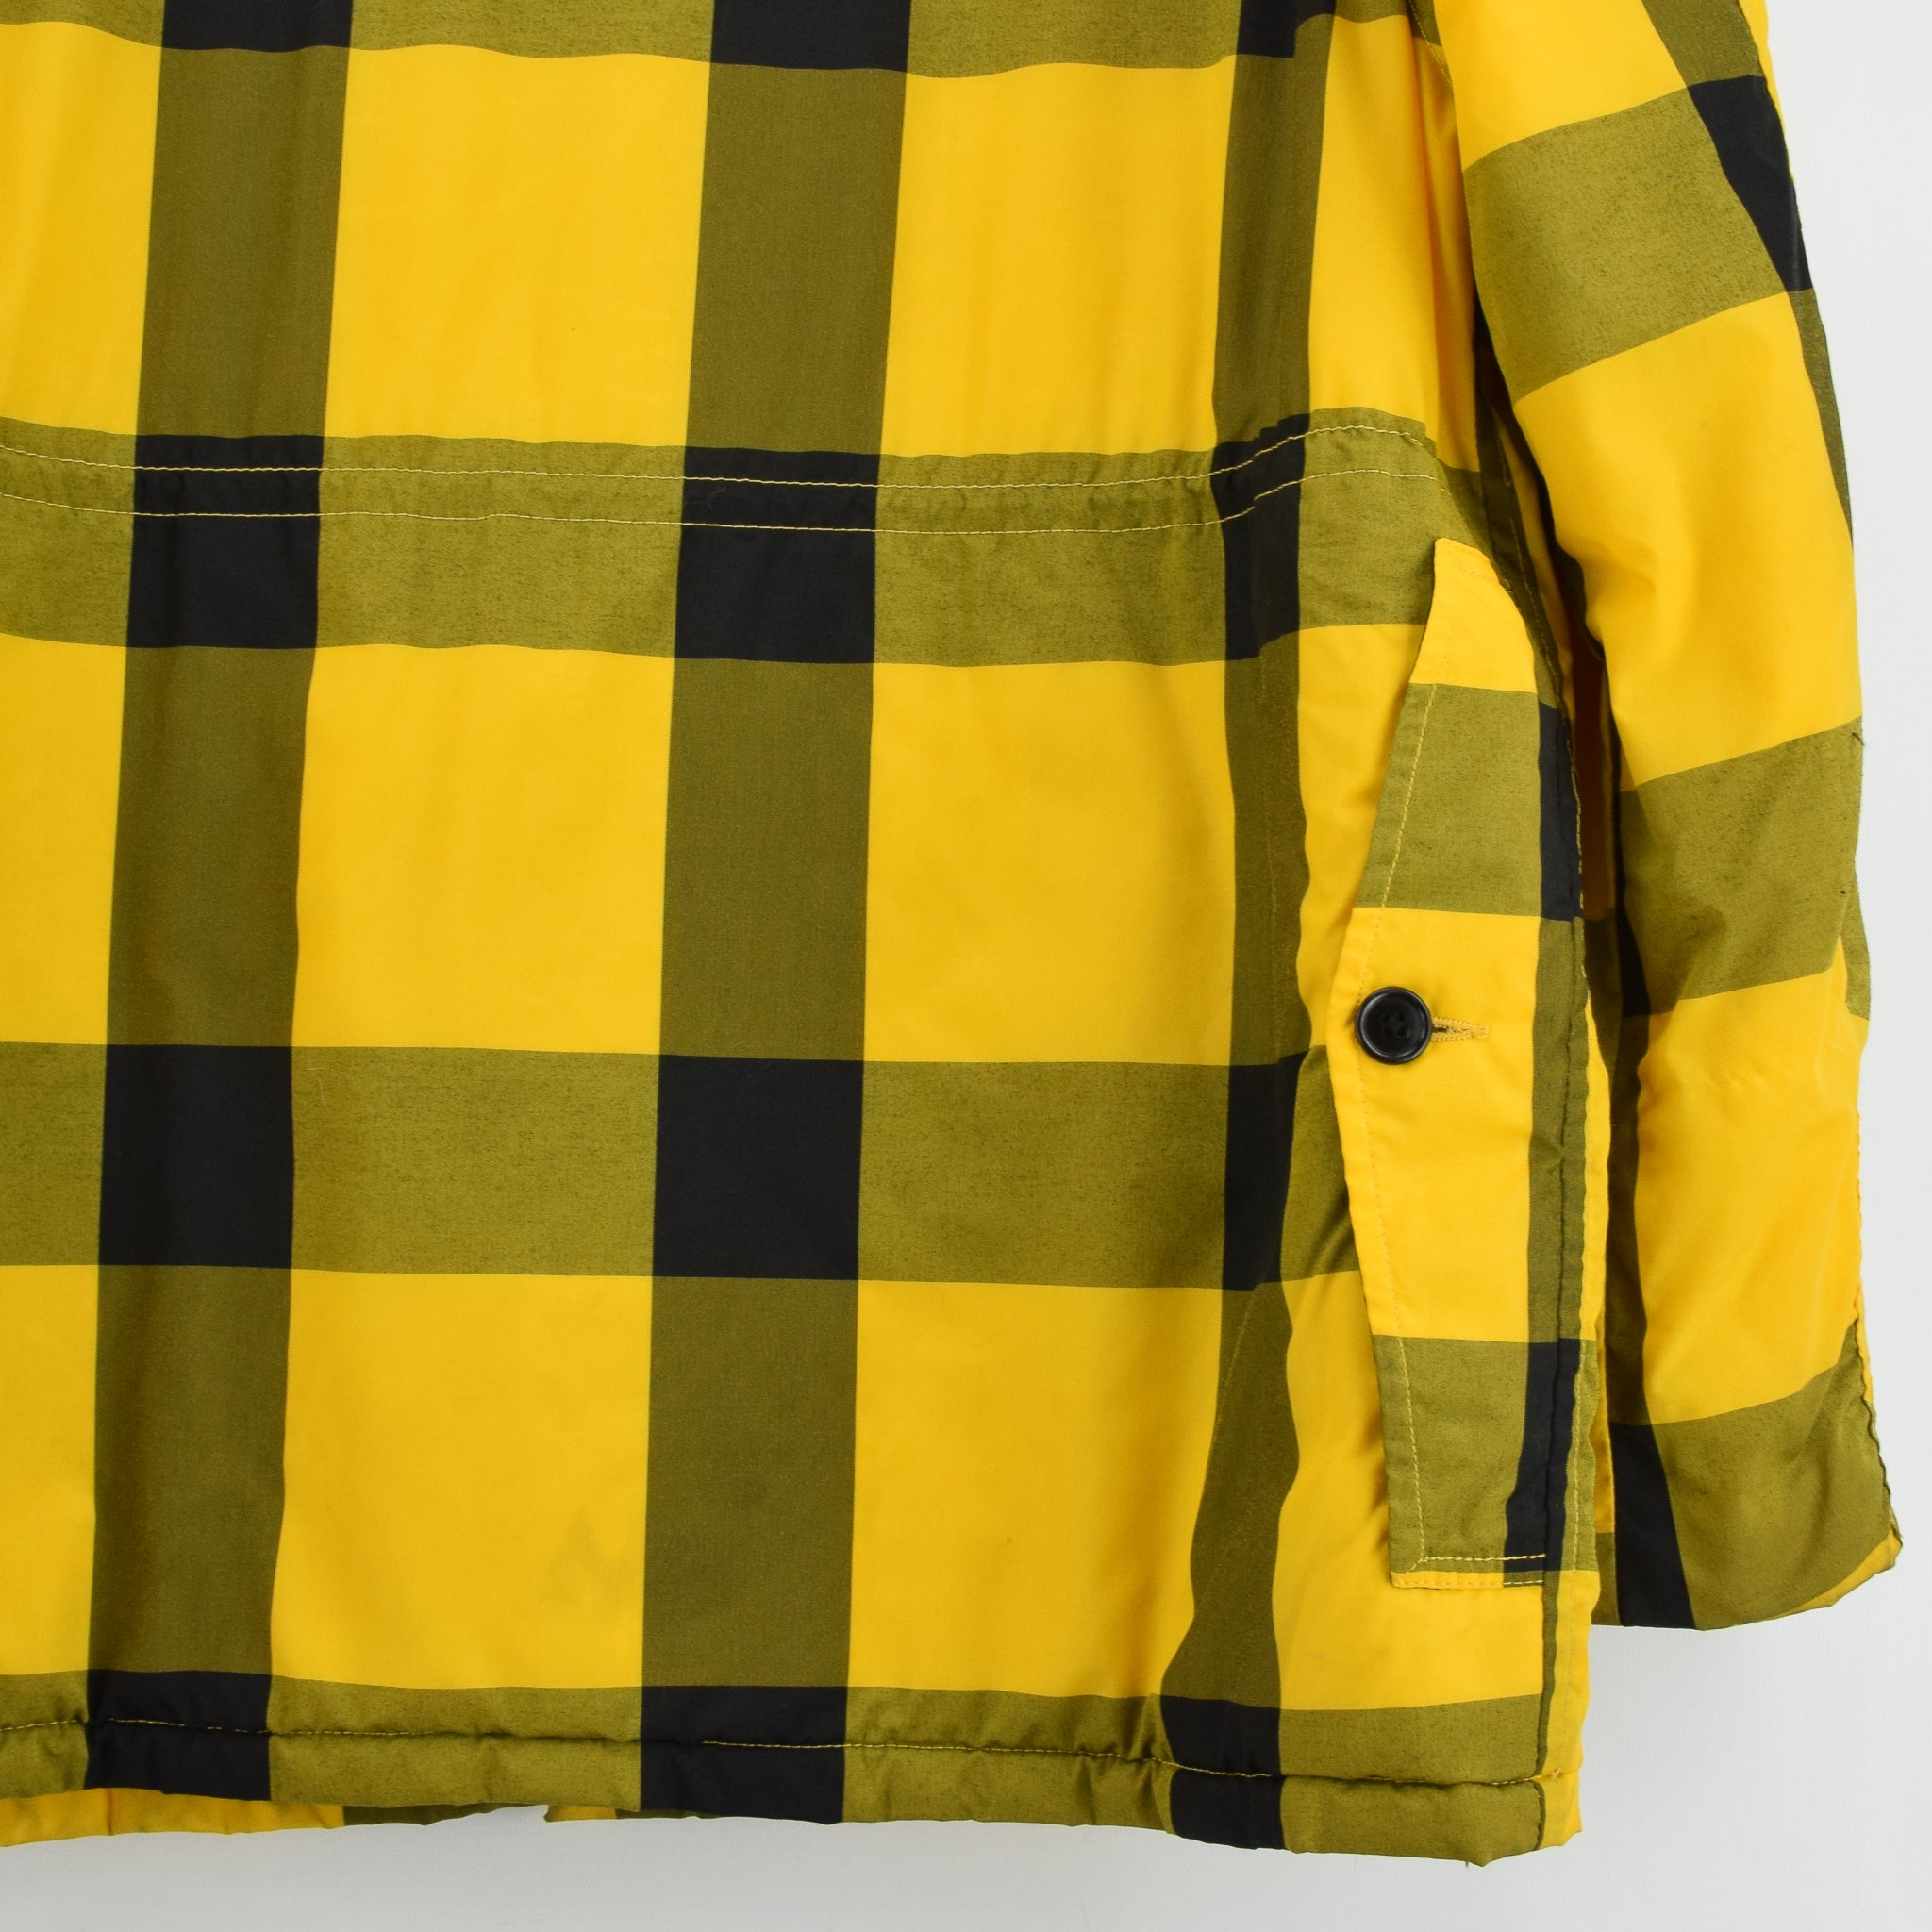 Vintage Sears Plaid Check Yellow Hunting Style Jacket Made in USA L back hem